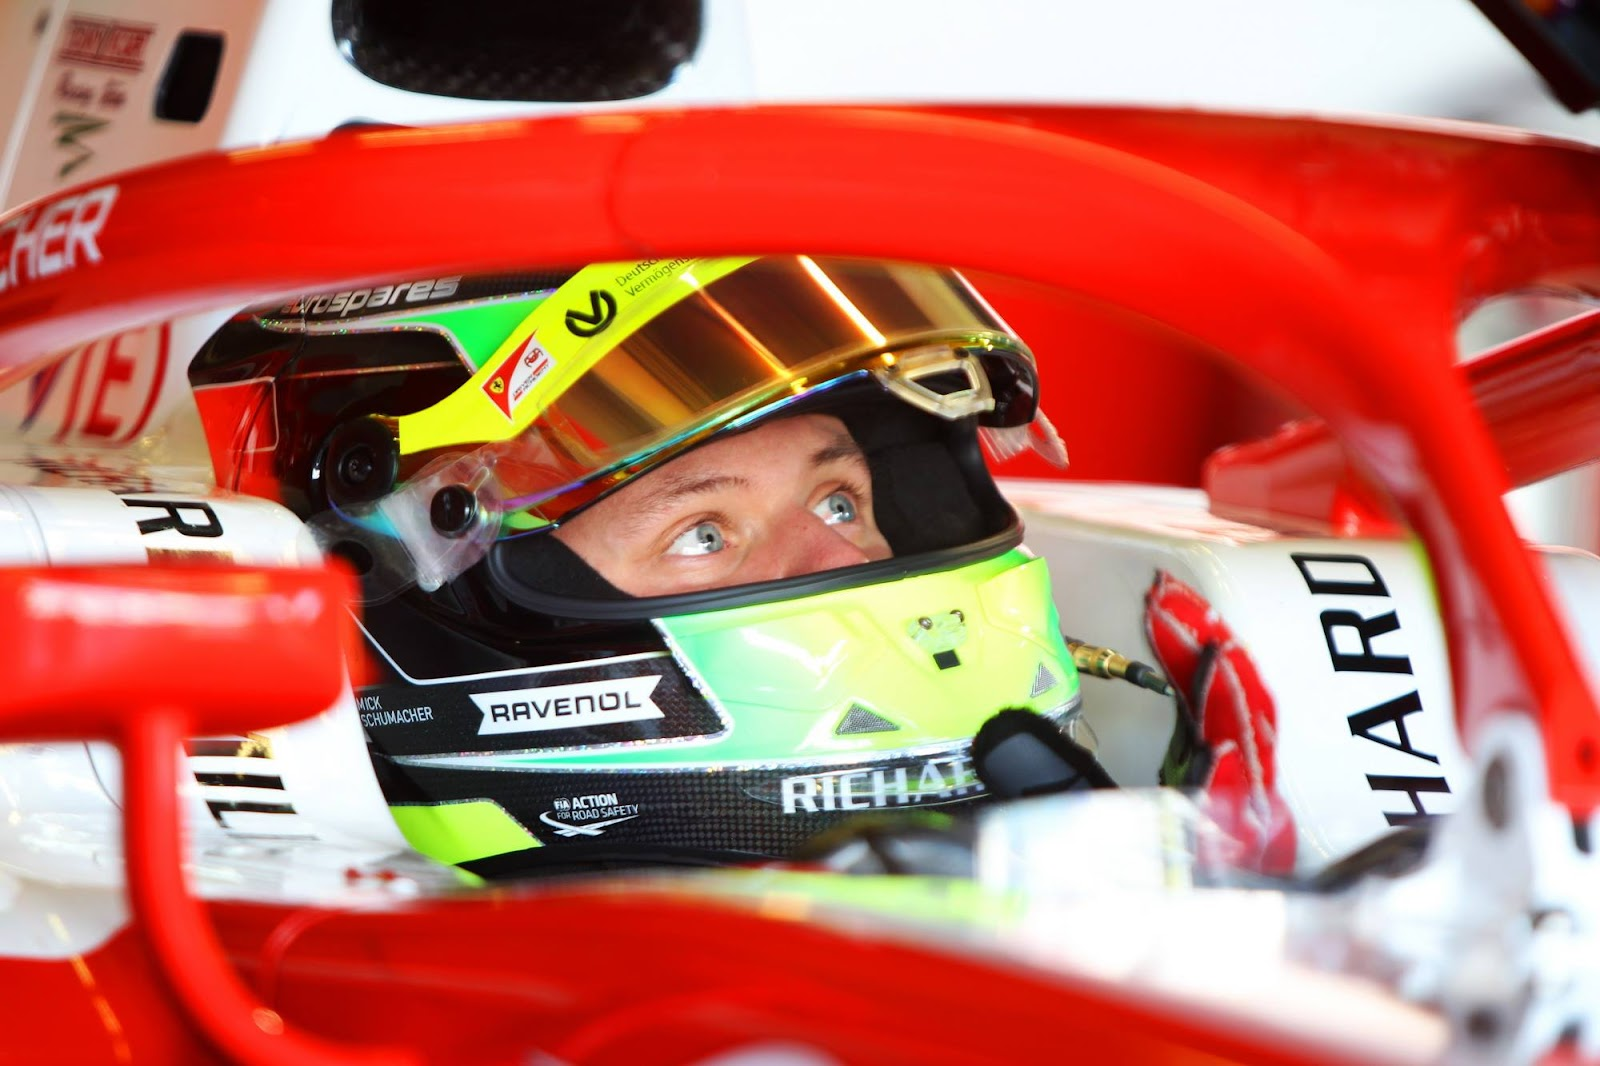 Mick Schumacher with halmet, Ravenol logo